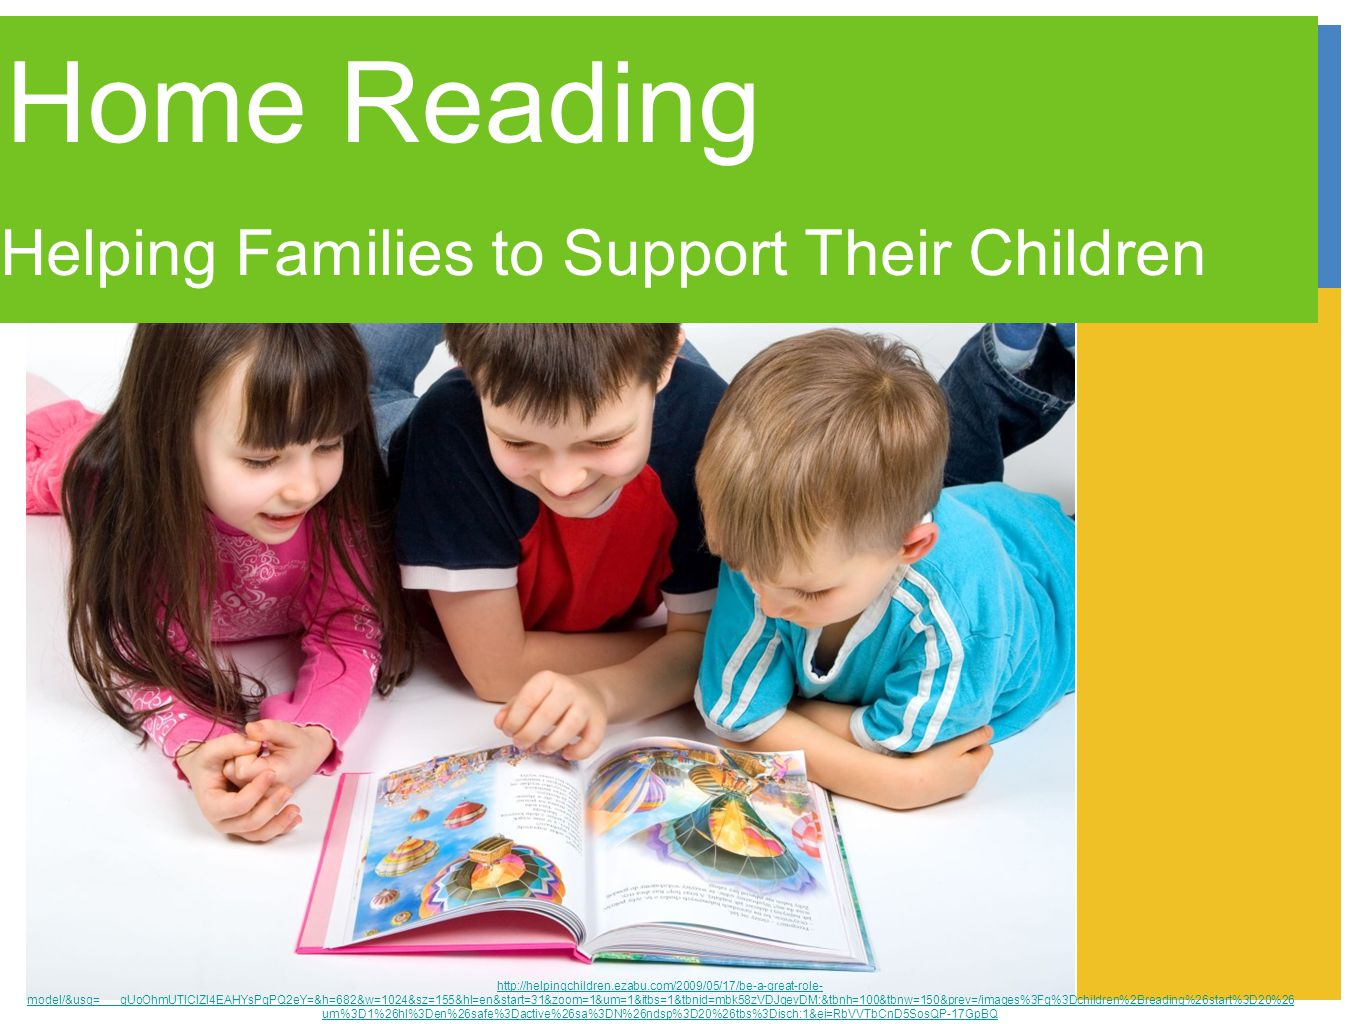 Continue to read pictures books to/with your child Visit the library.....often.